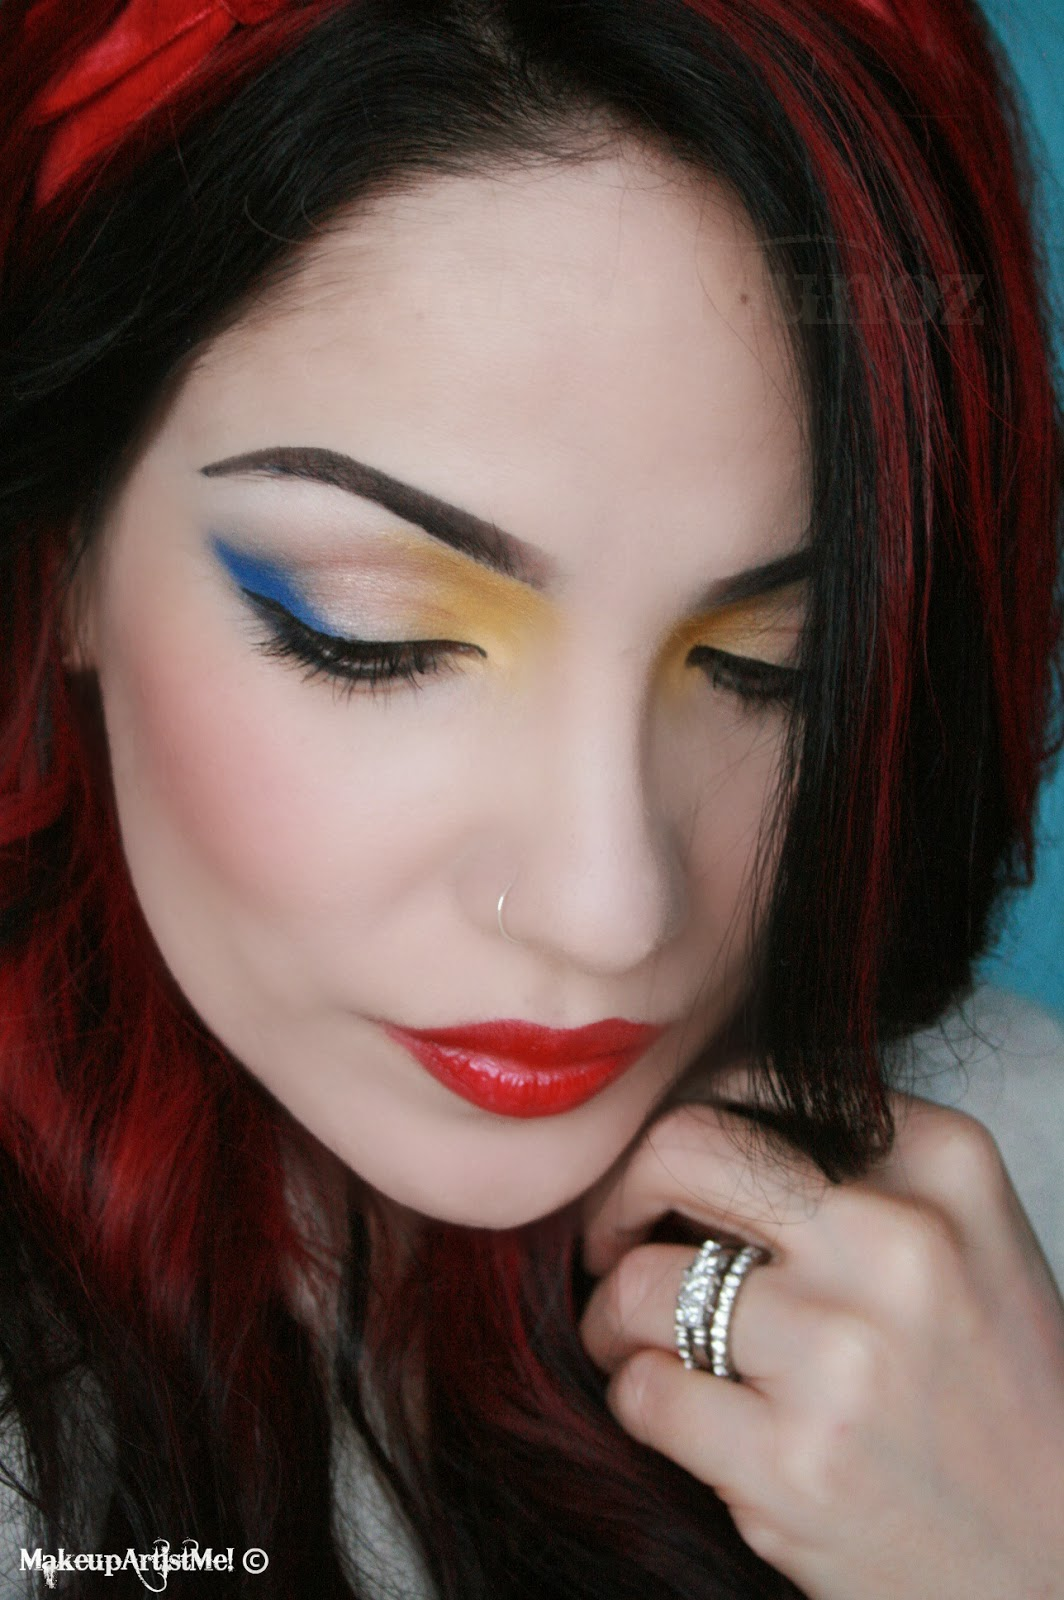 Make Up Tutorials Youtube: Make-up Artist Me!: Like Snow White -- A Snow White